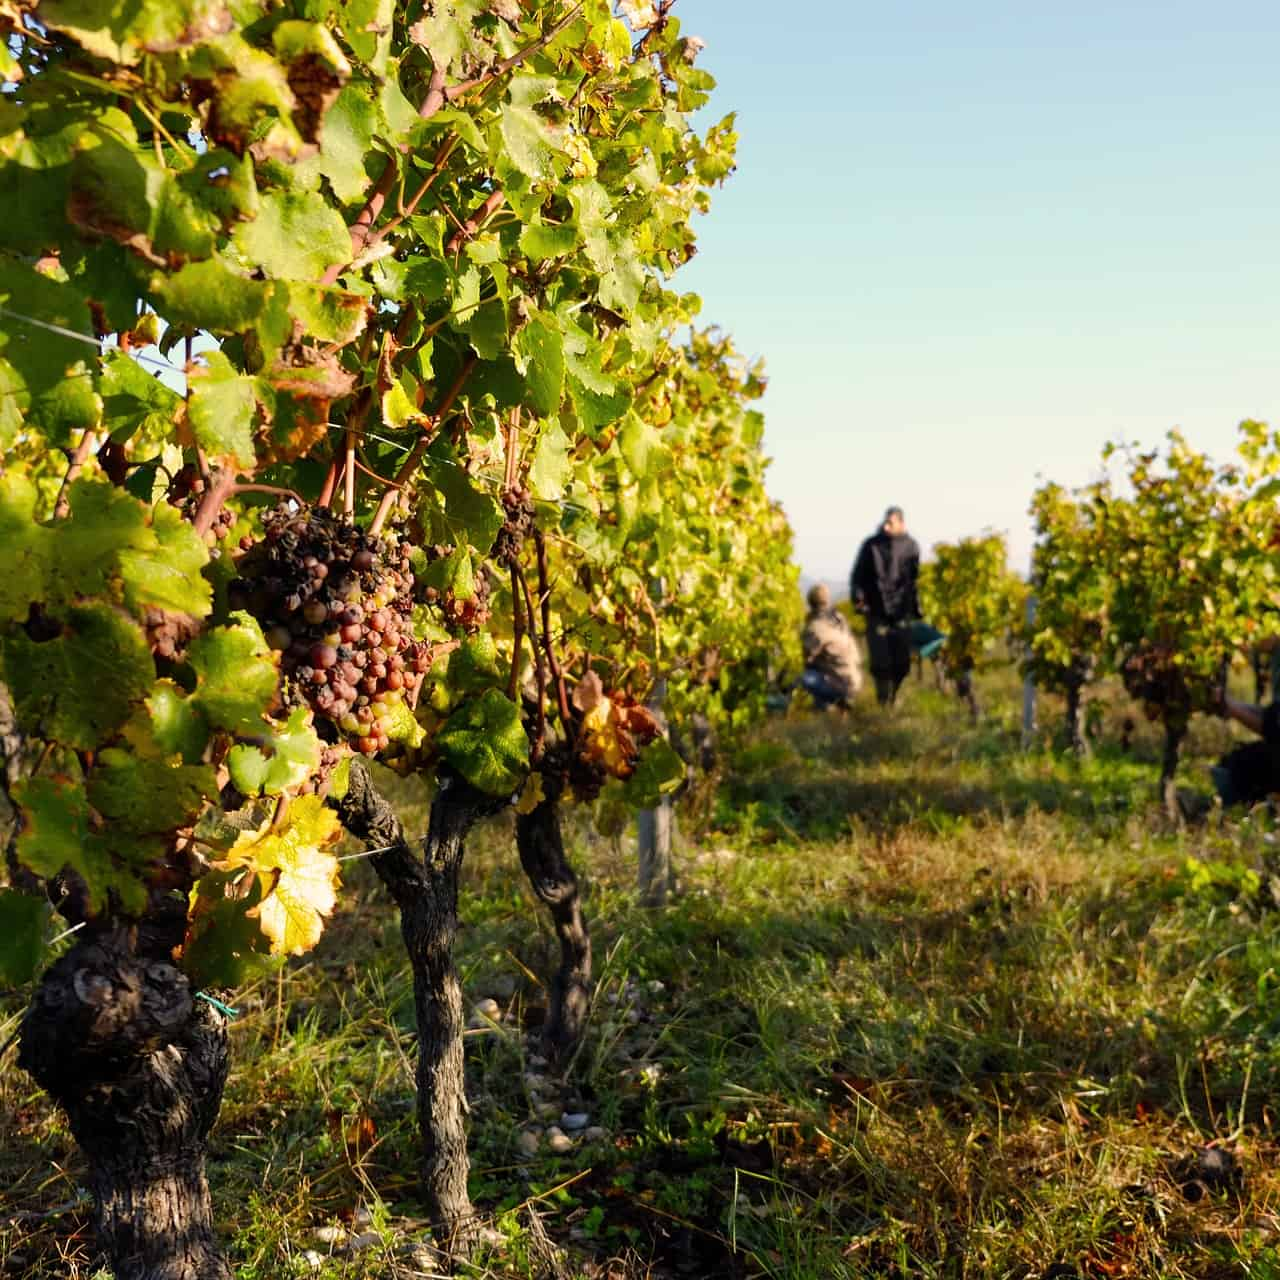 The 2019 Bordeaux harvest was very successful